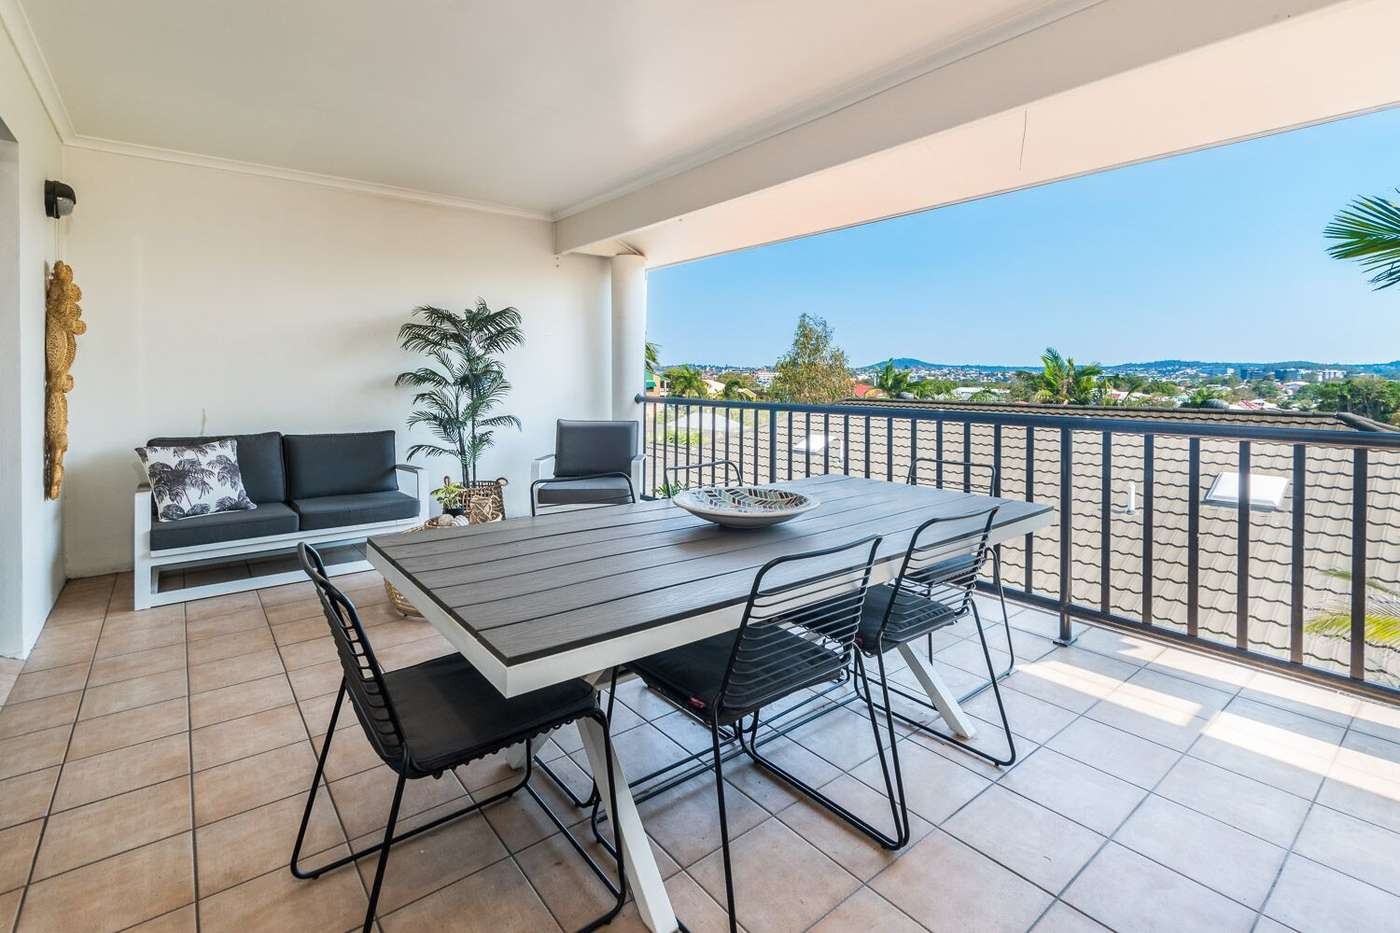 Main view of Homely apartment listing, 495 Vulture Street, East Brisbane, QLD 4169